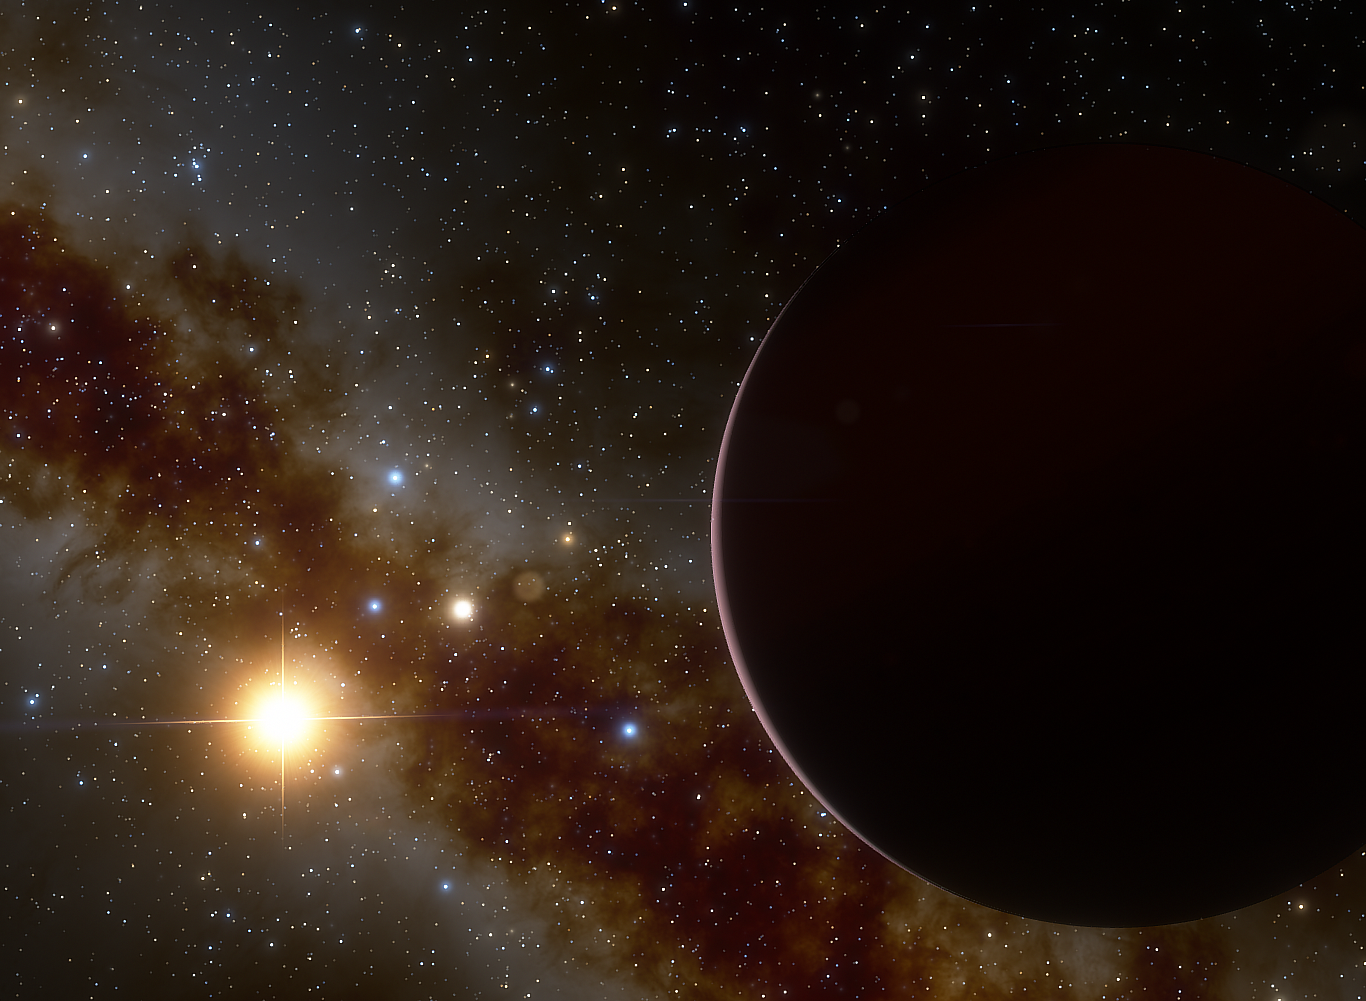 CARMENES finds an anomalous planetary system